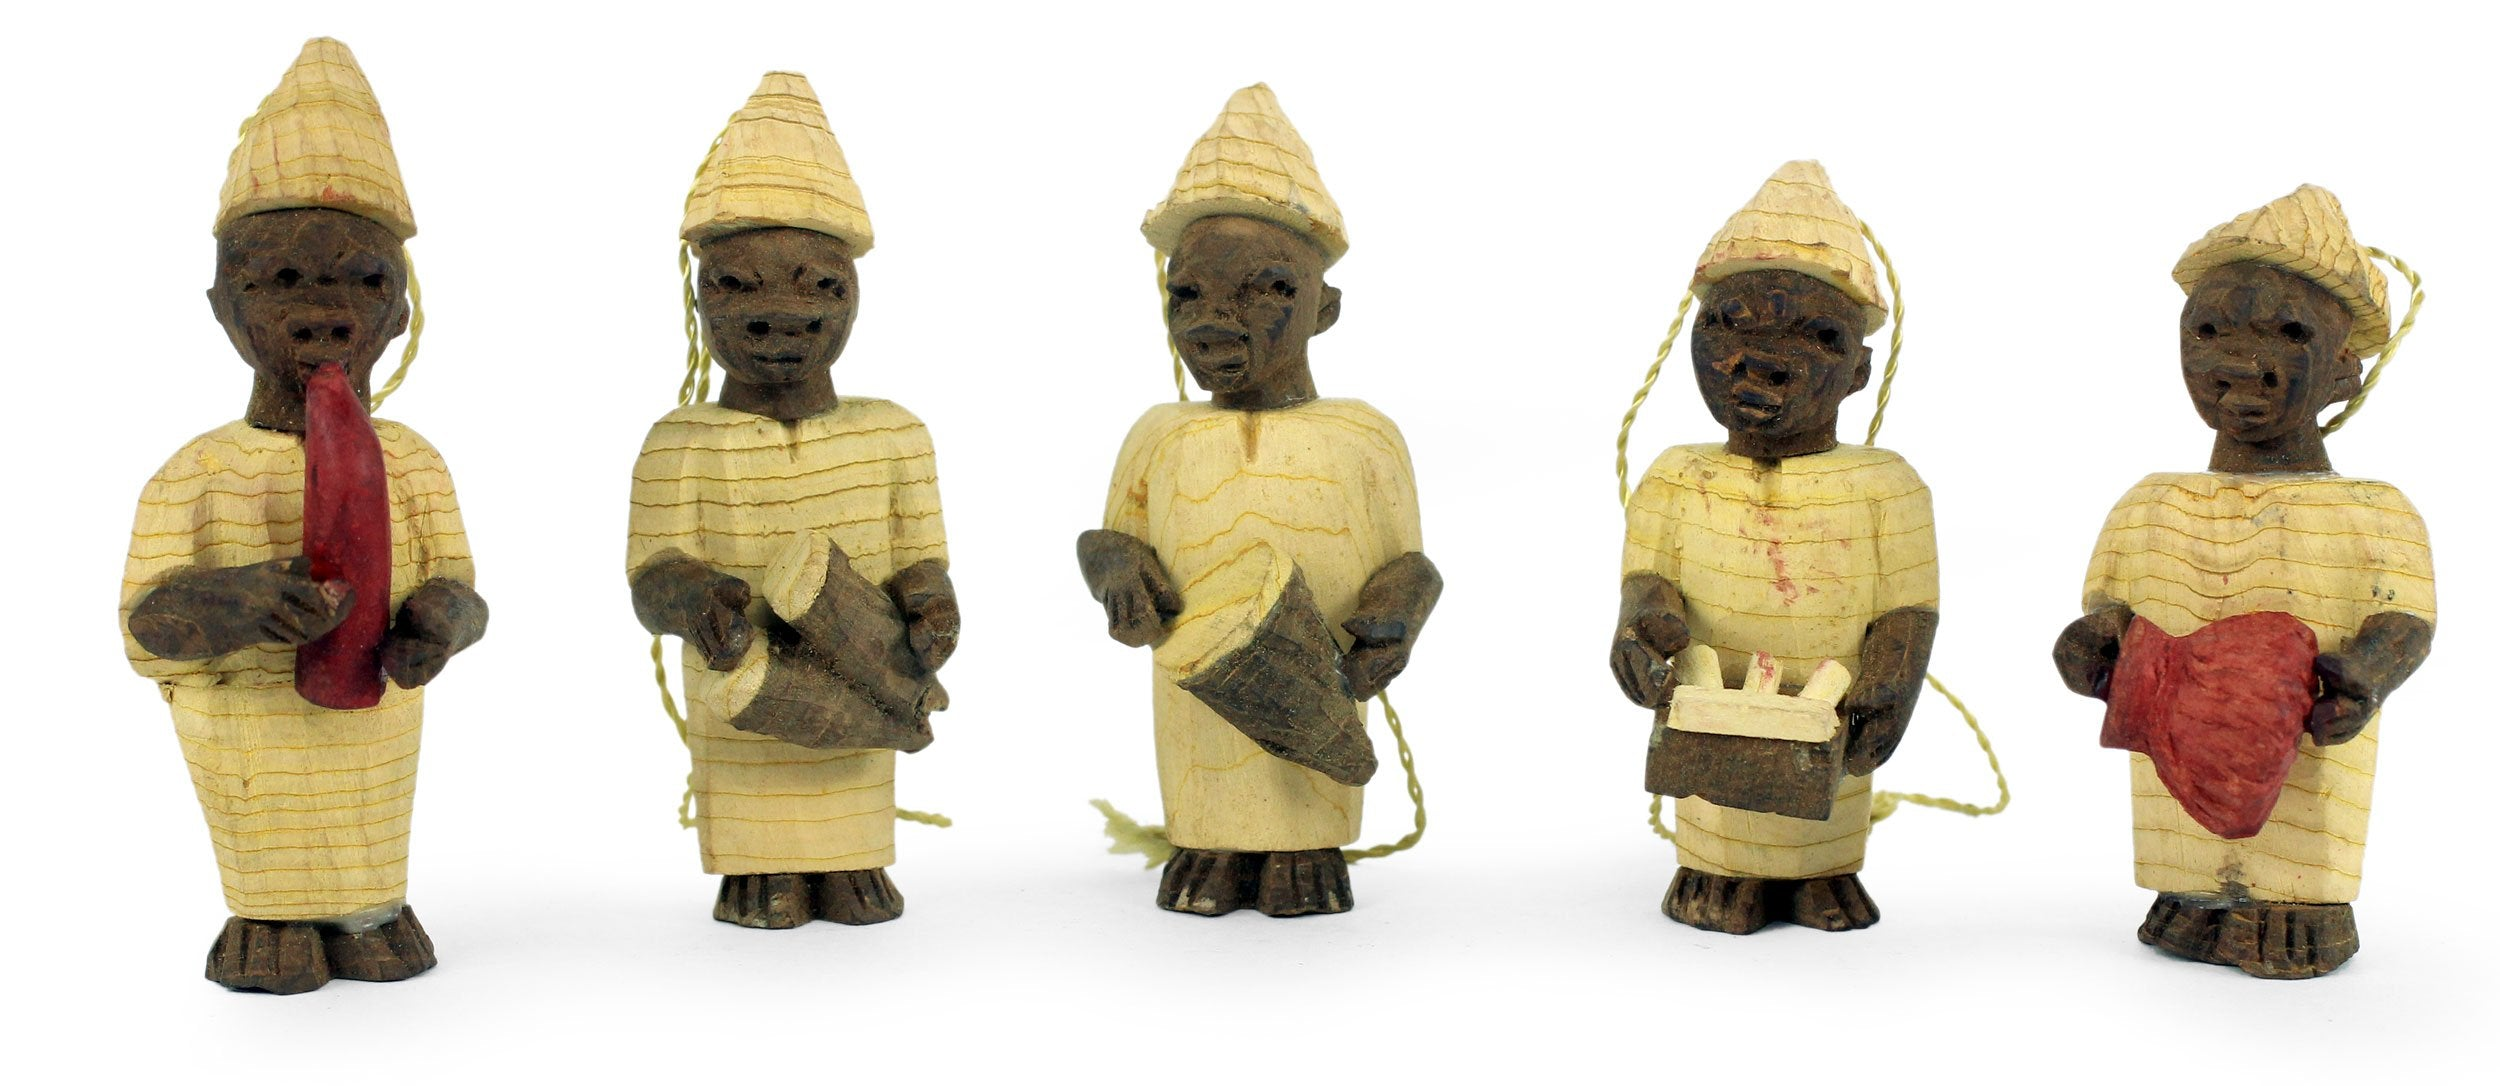 Welcoming Band: Authentic African Hand Made Kapok Wood Christmas Ornament Set by Francis Agbete